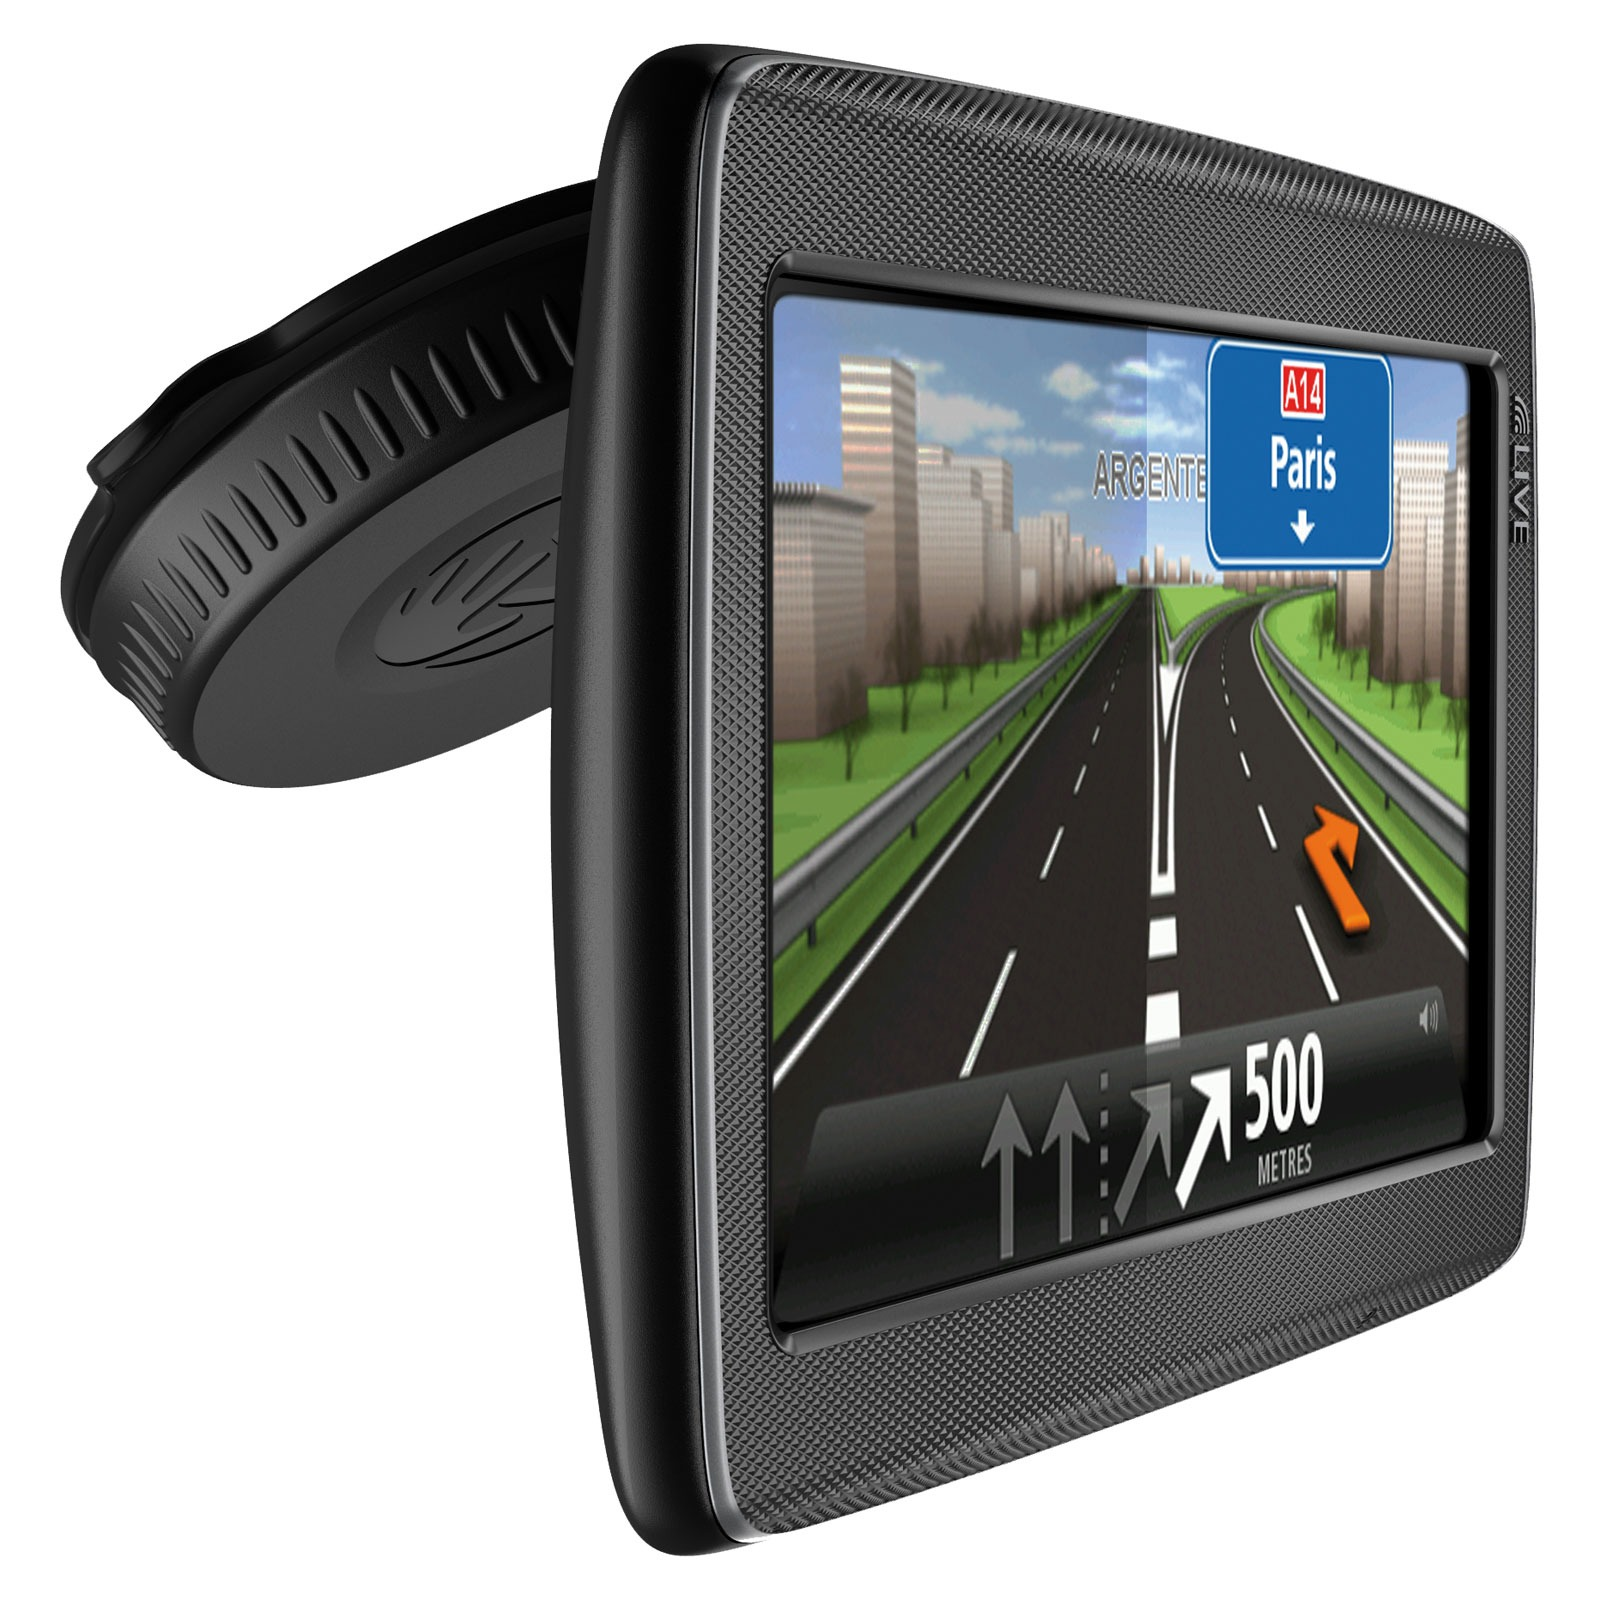 tomtom go live 820 europe gps tomtom sur ldlc. Black Bedroom Furniture Sets. Home Design Ideas